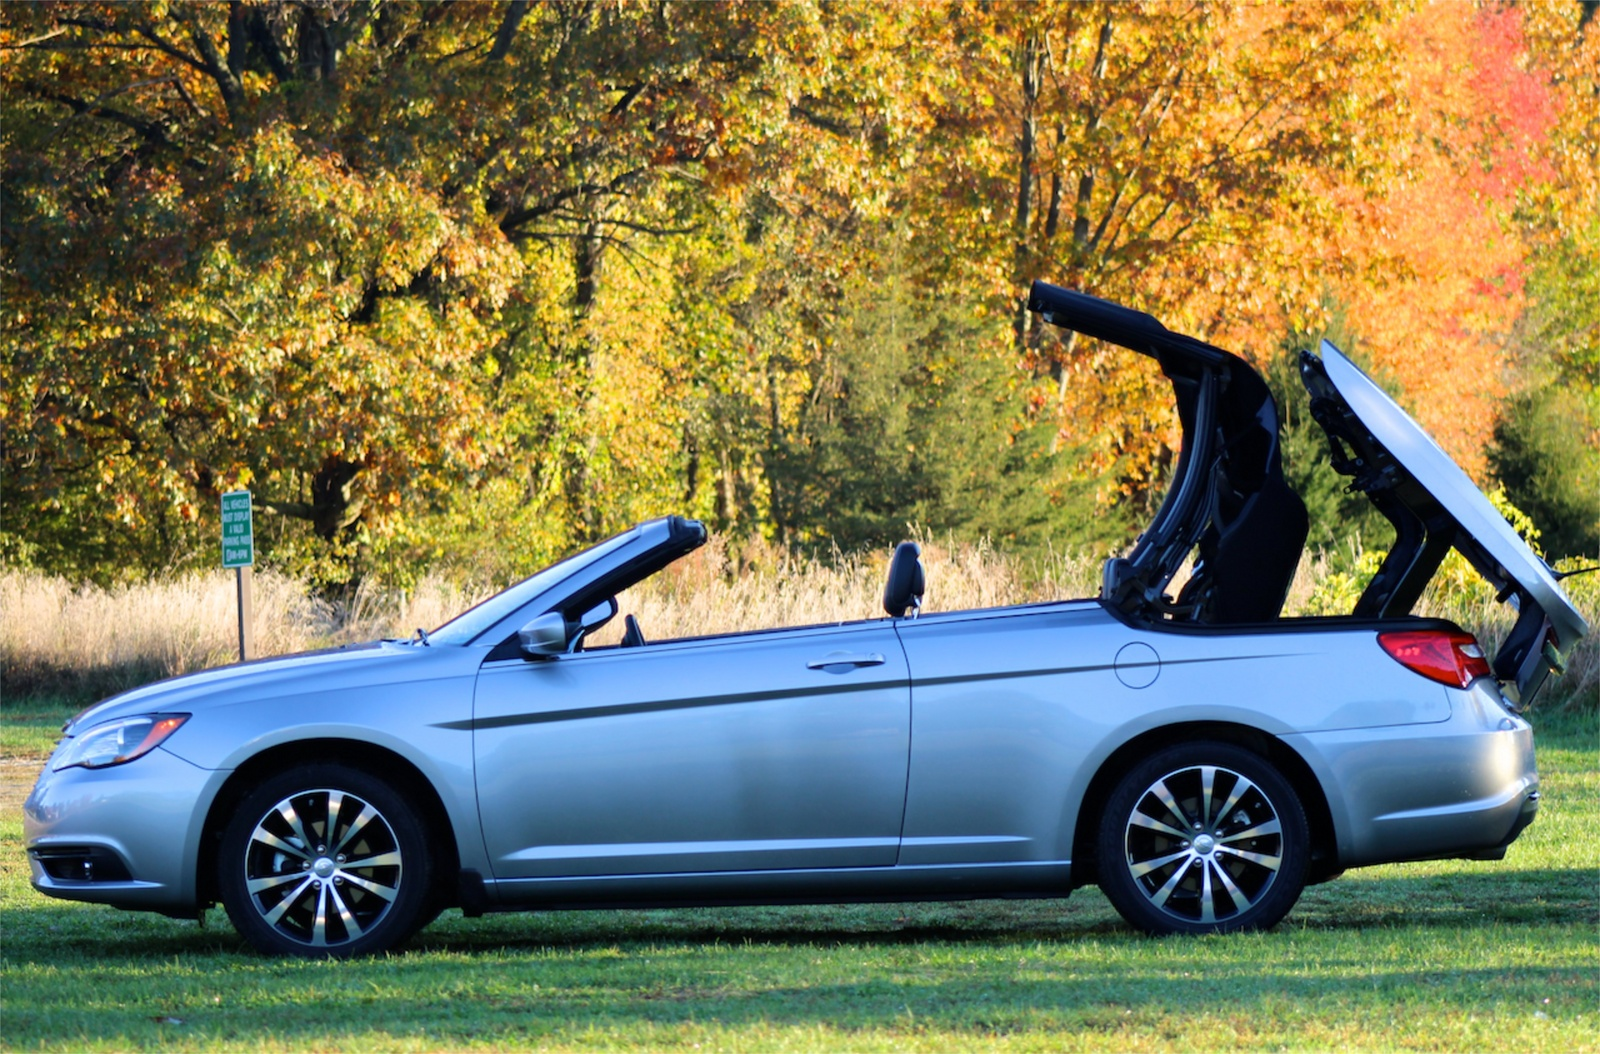 Side view of the 2013 Chrysler 200S Convertible, exterior